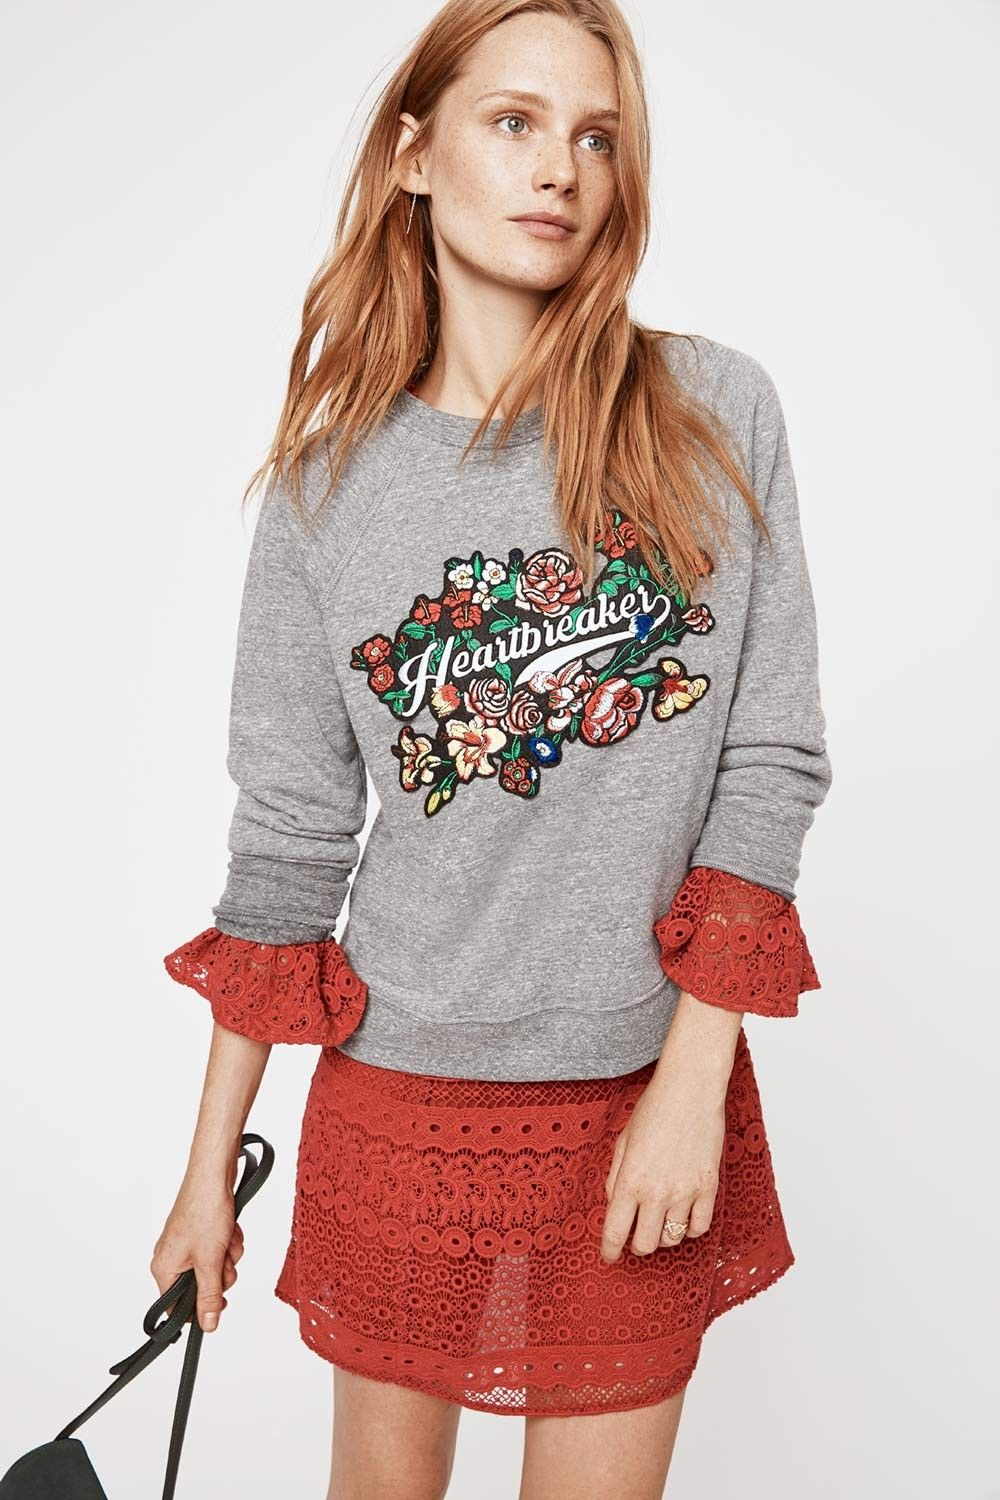 "Heartbreaker Patch Sweatshirt - #Humblebrag. Our sweatshirts are so cozy. The best part—they're put together enough that you can wear them pretty much everywhere. And this one features a colorful ""Heartbreaker"" patch for a little cheekiness."